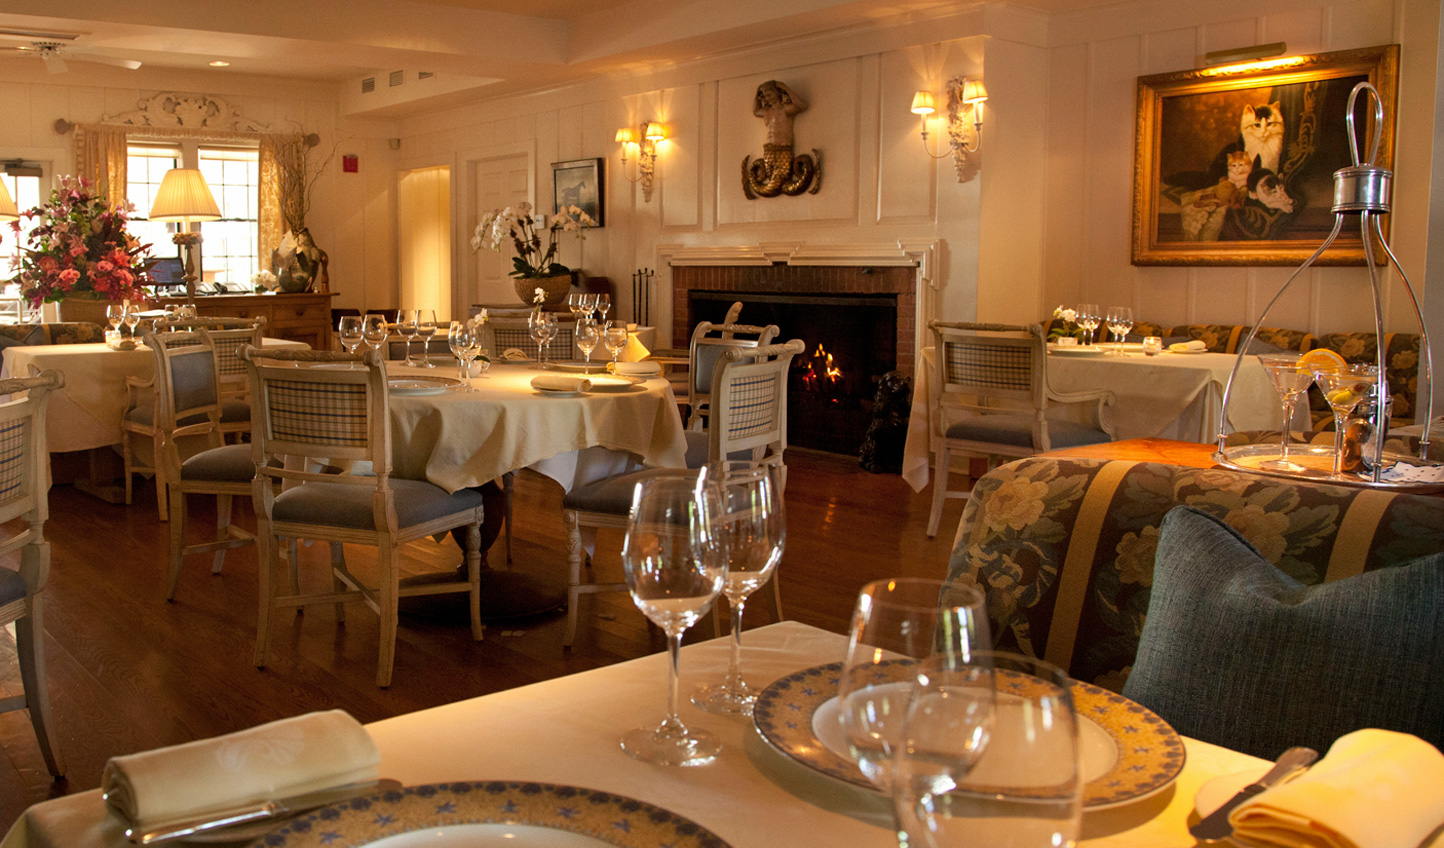 The hotel's restaurant, TOPPER's, is one of the nation's most acclaimed restaurants